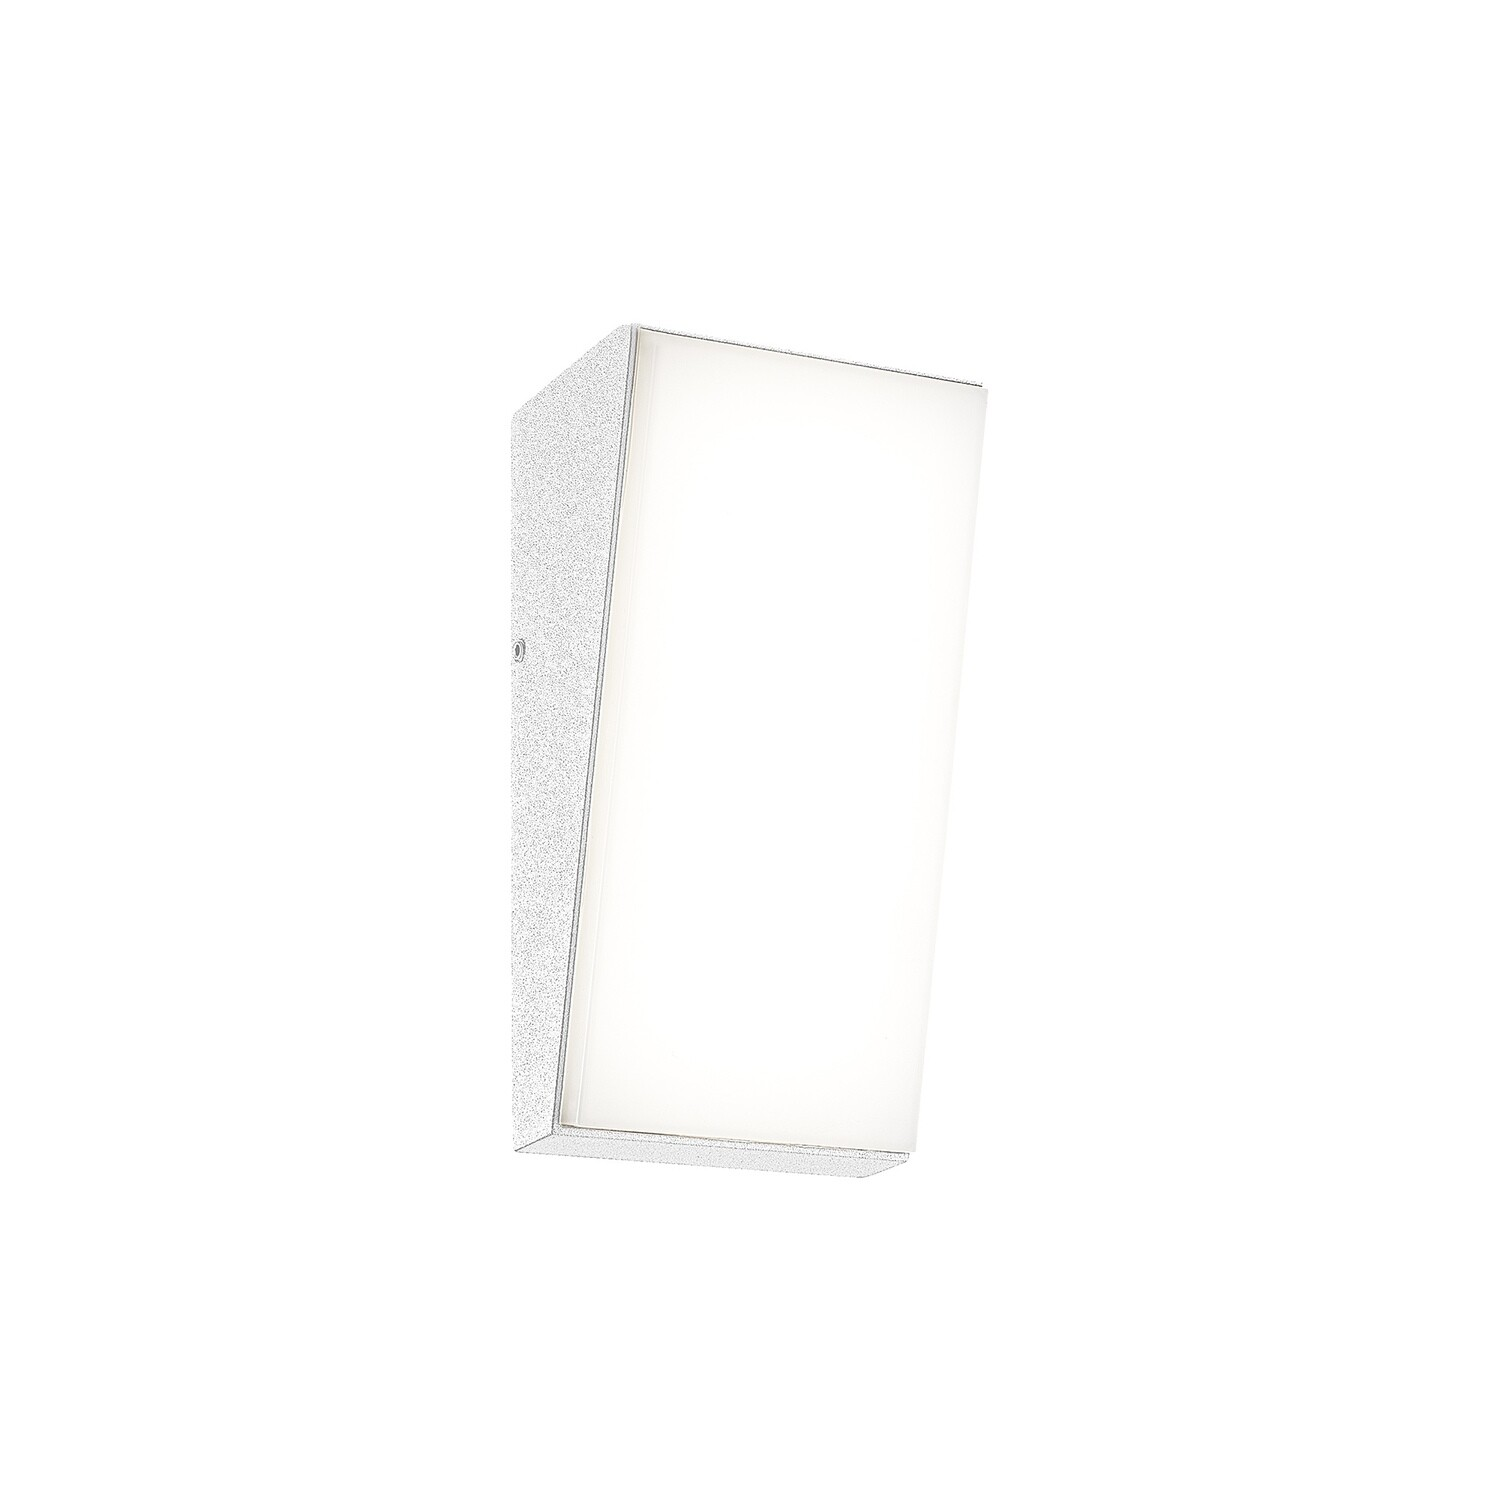 Solden Vertical Wall Lamp, 9W LED, 3000K, IP65 White